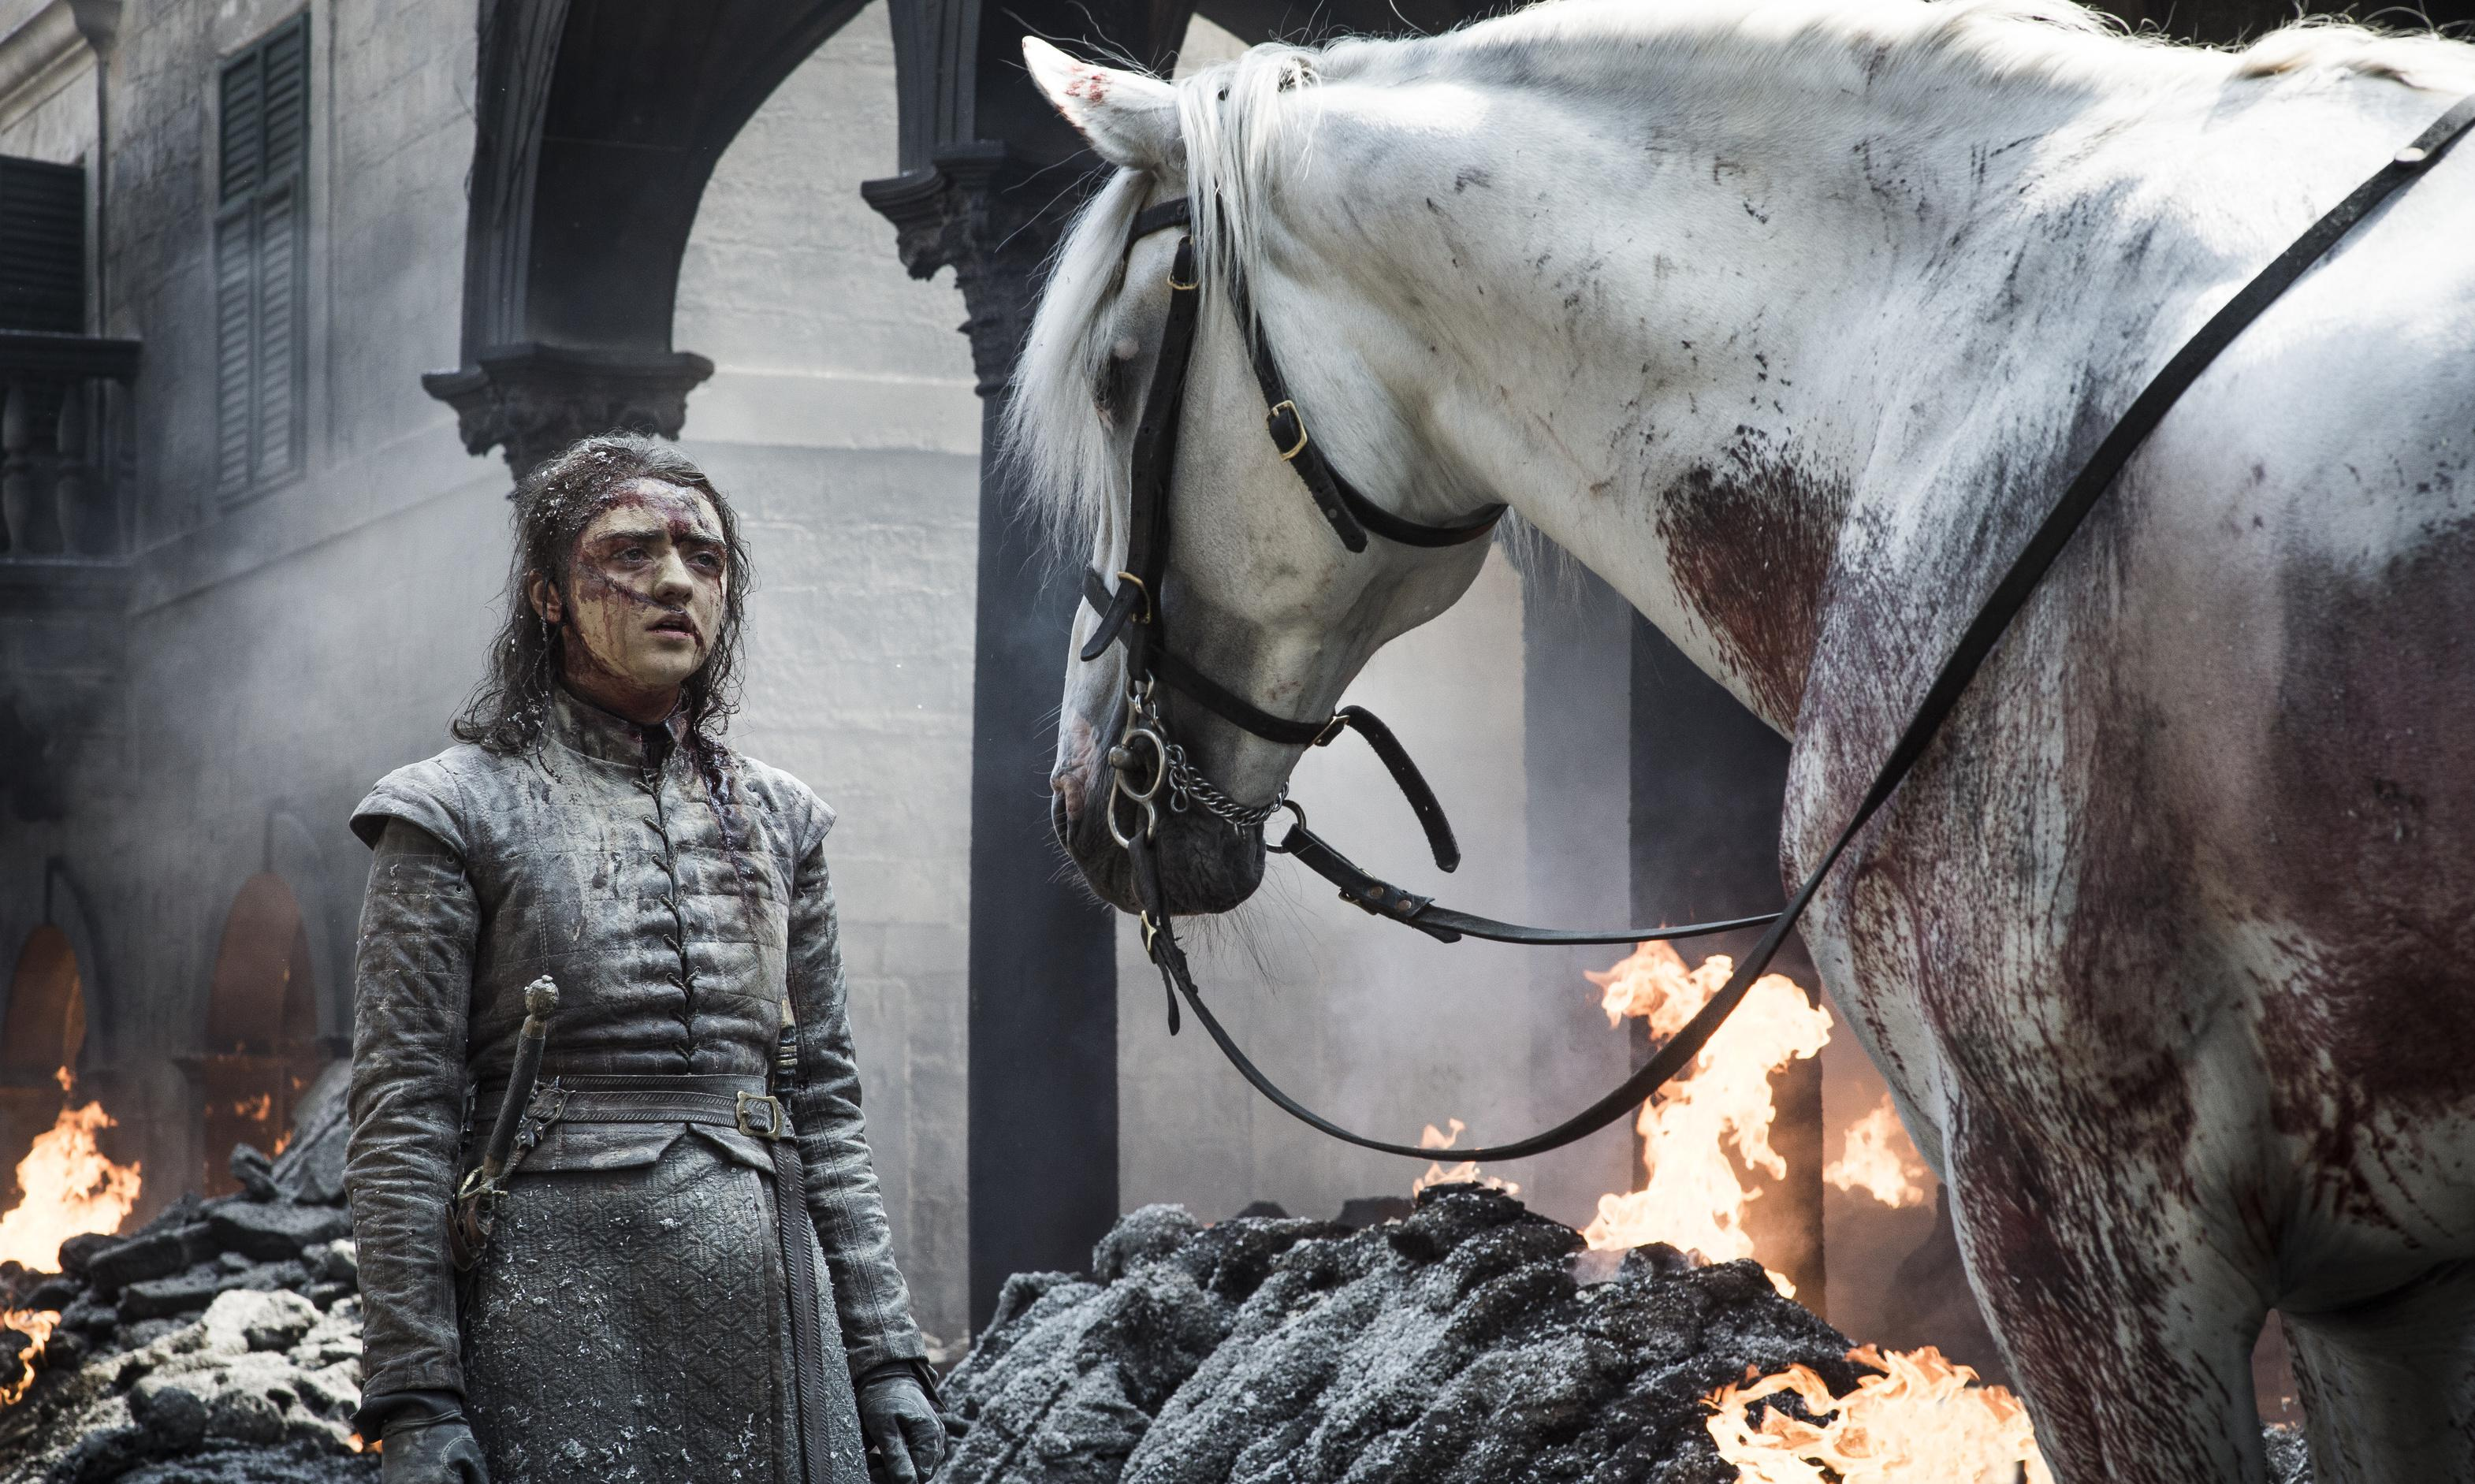 Stop the nitpicking! This season of Game of Thrones is miraculous